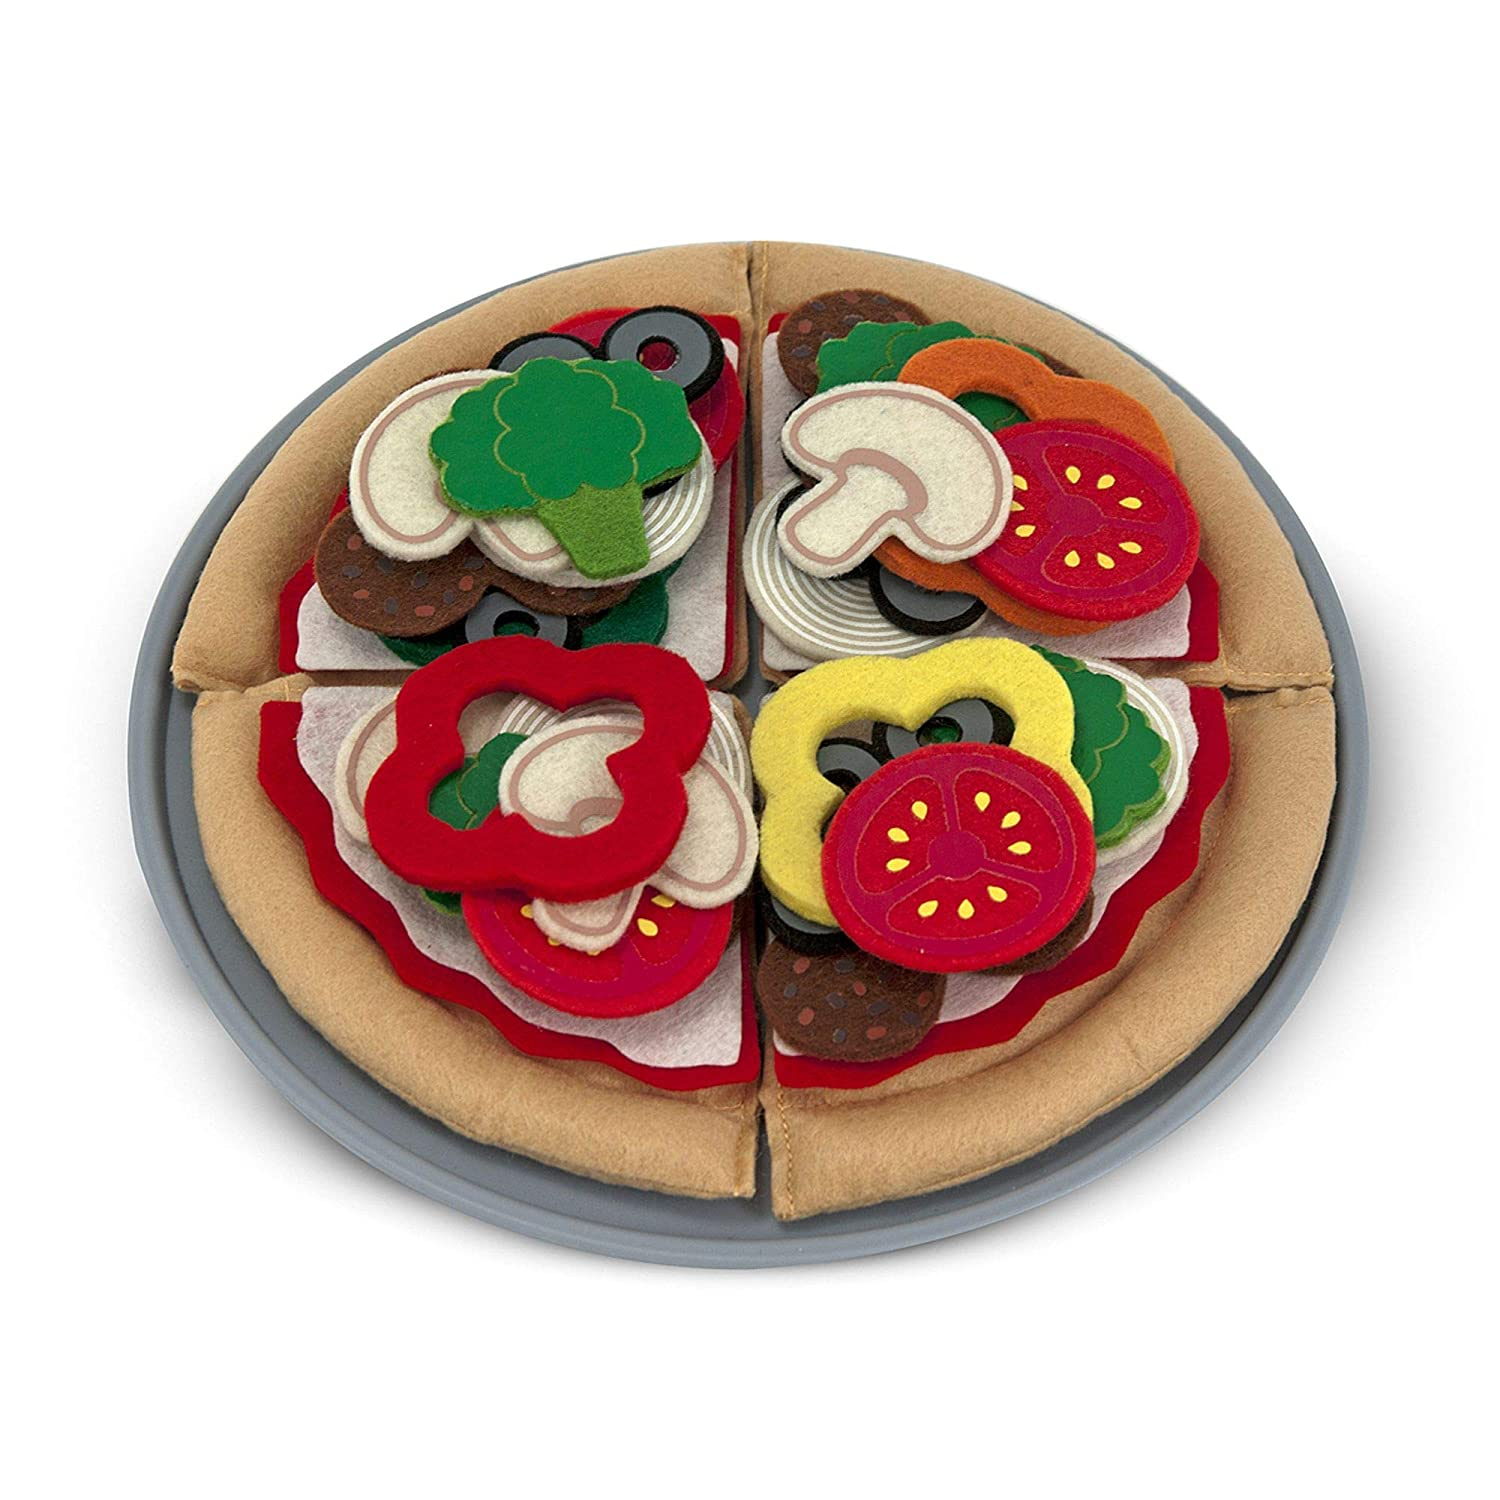 Melissa & Doug Felt Pizza Set